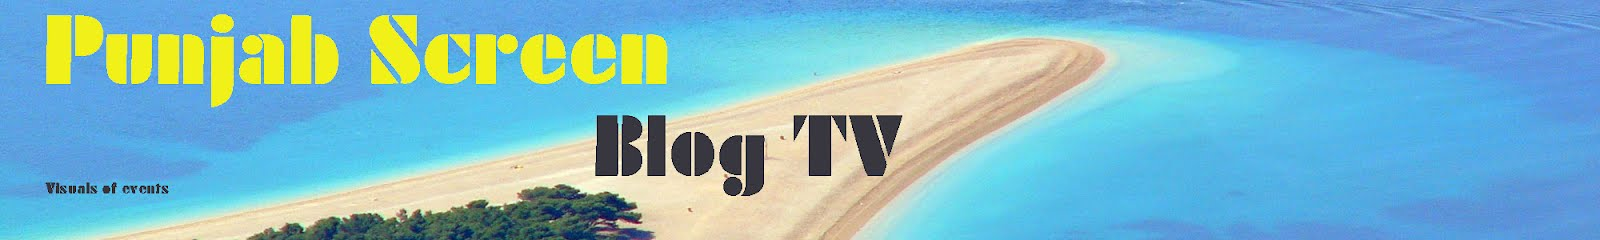 Punjab Screen Blog TV